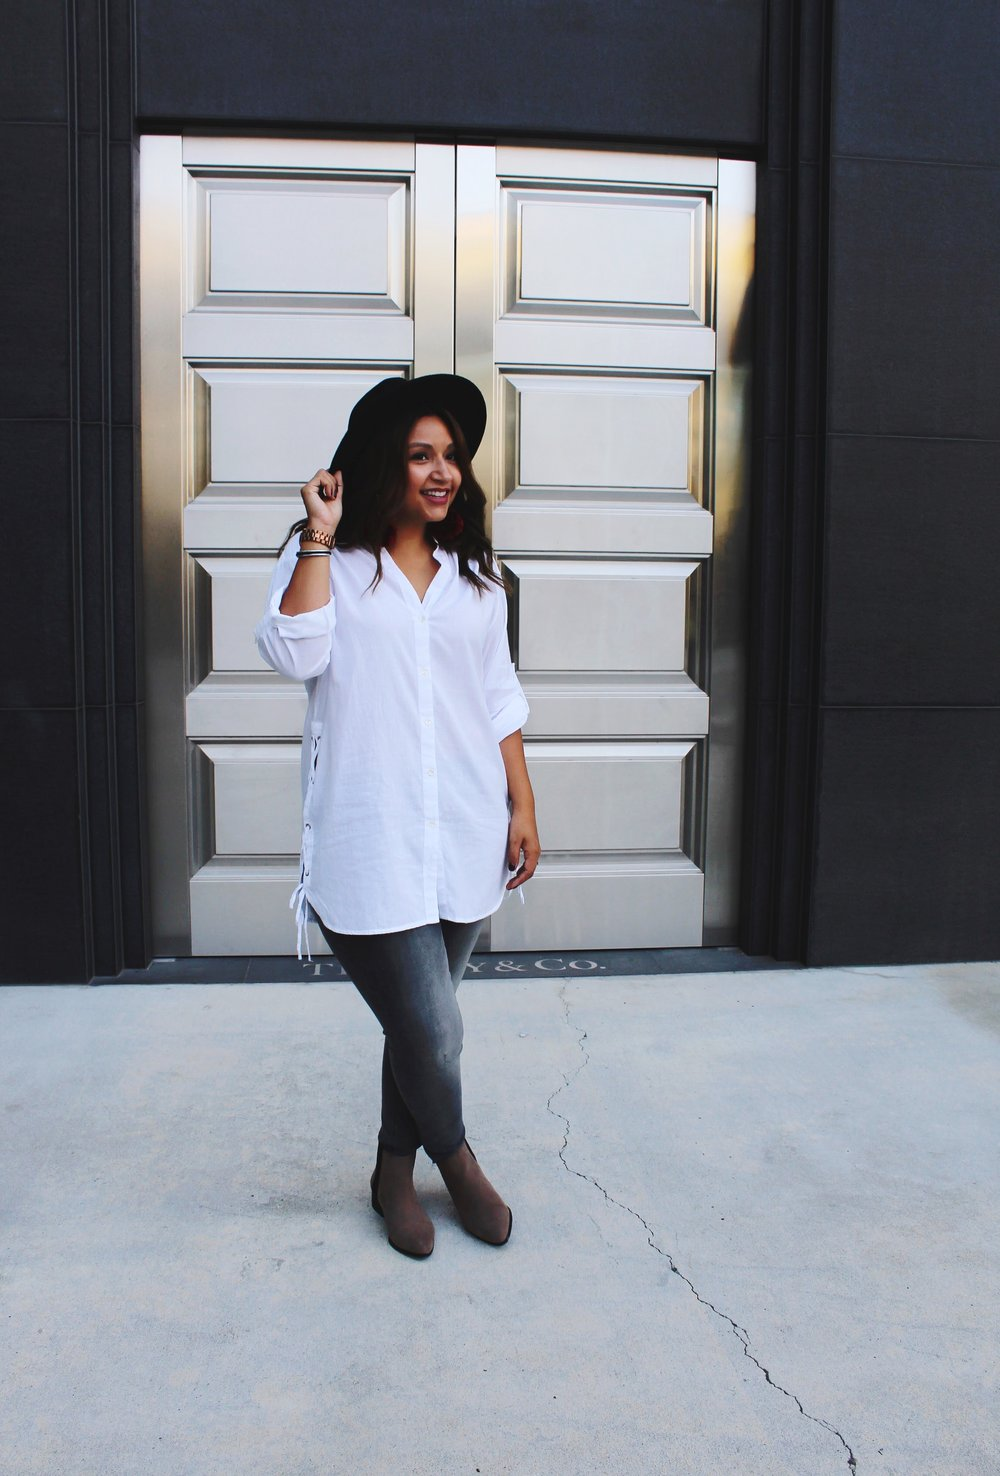 Silver Doors/ White Cotton Zara Button Down Shirt paired with a light grey wash express jeans and camel colored ankle boots